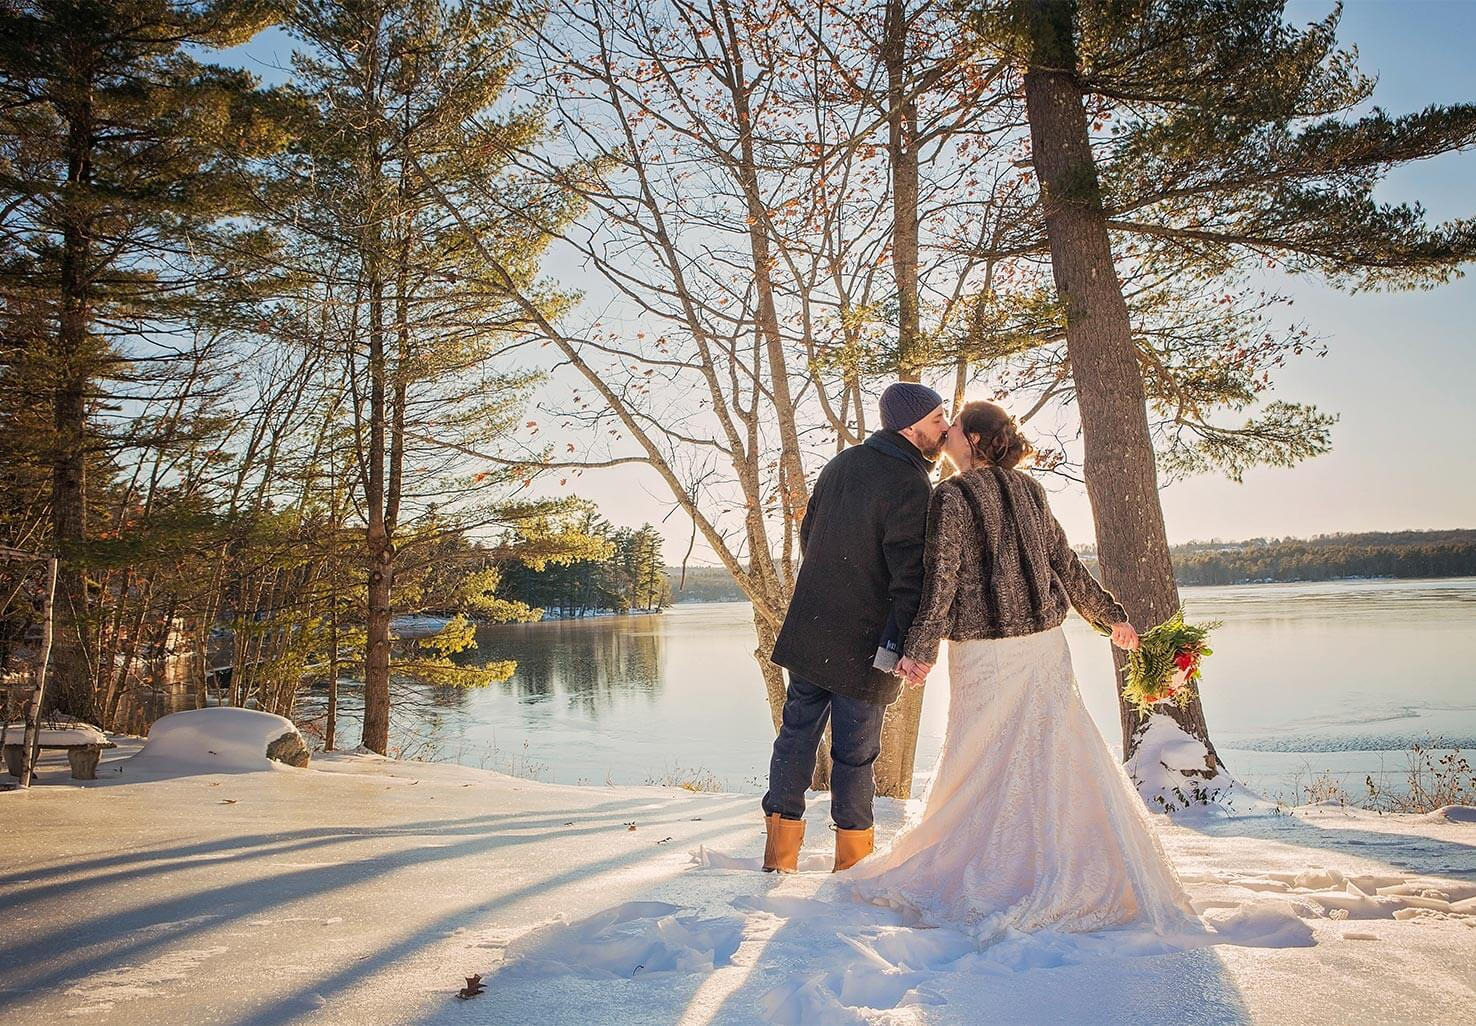 Wedding Kiss Lakeside in Winter